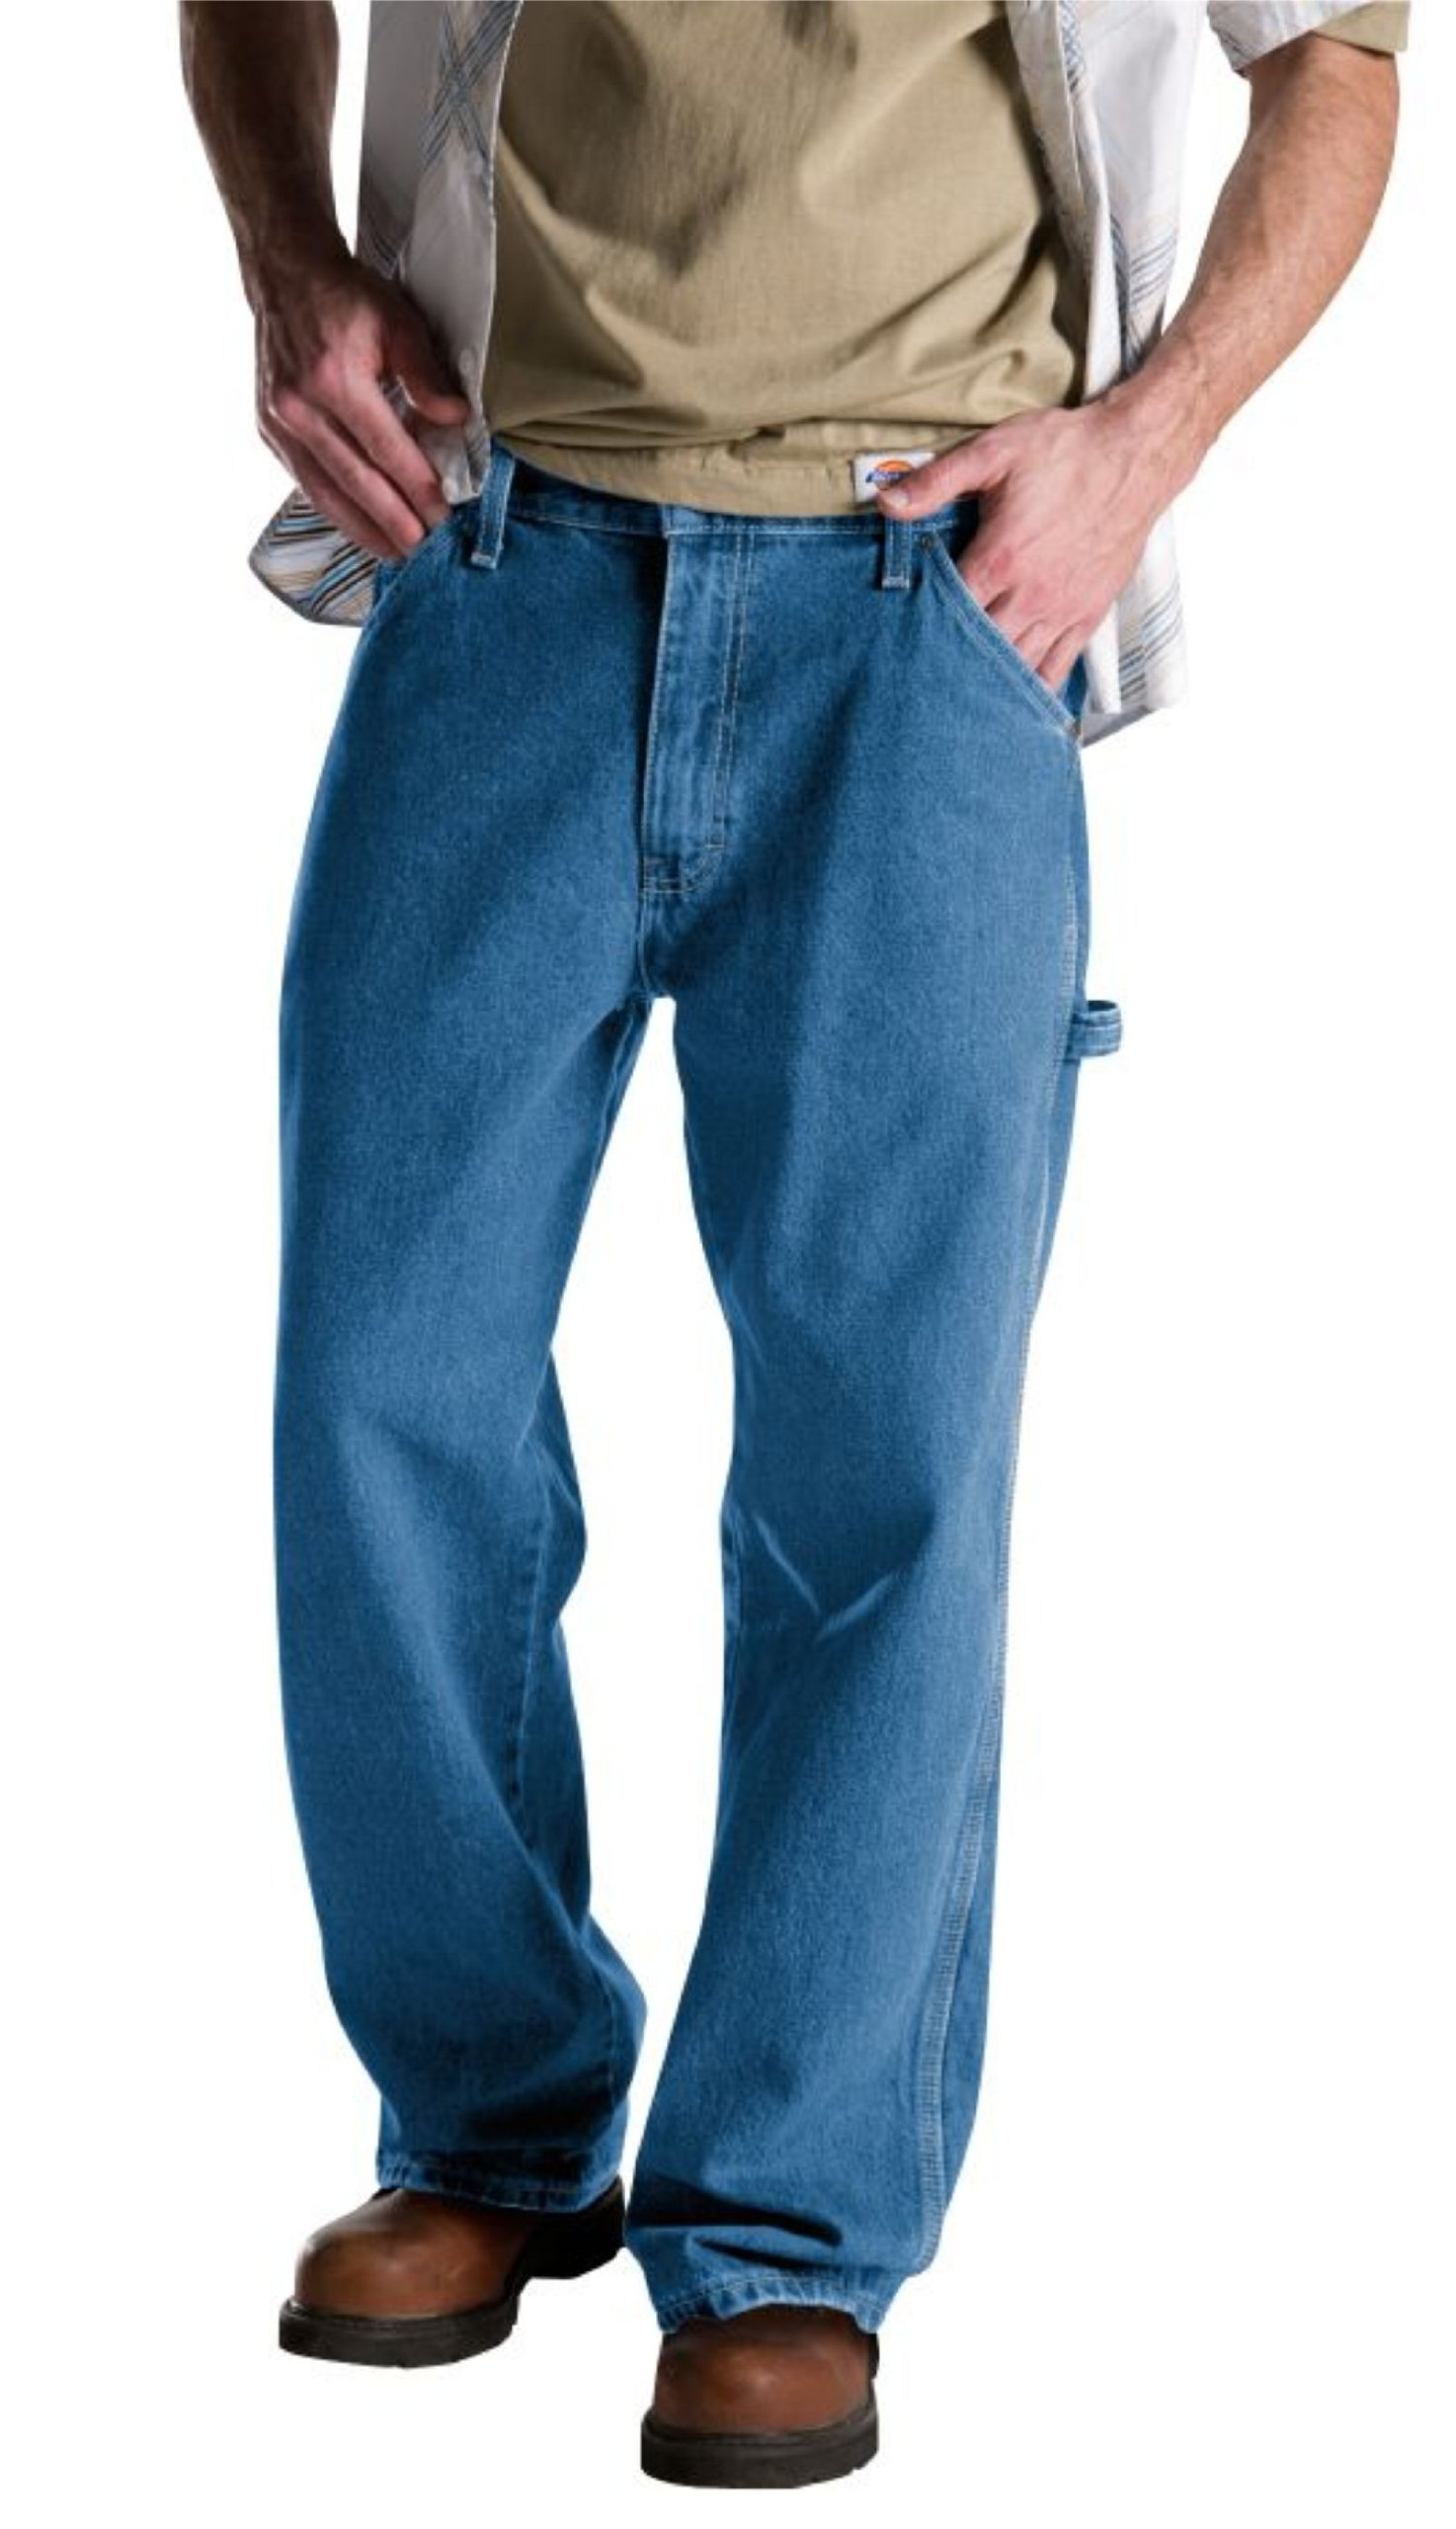 Dickies Men's Relaxed Fit Carpenter Jean, Stone Washed, 38x30